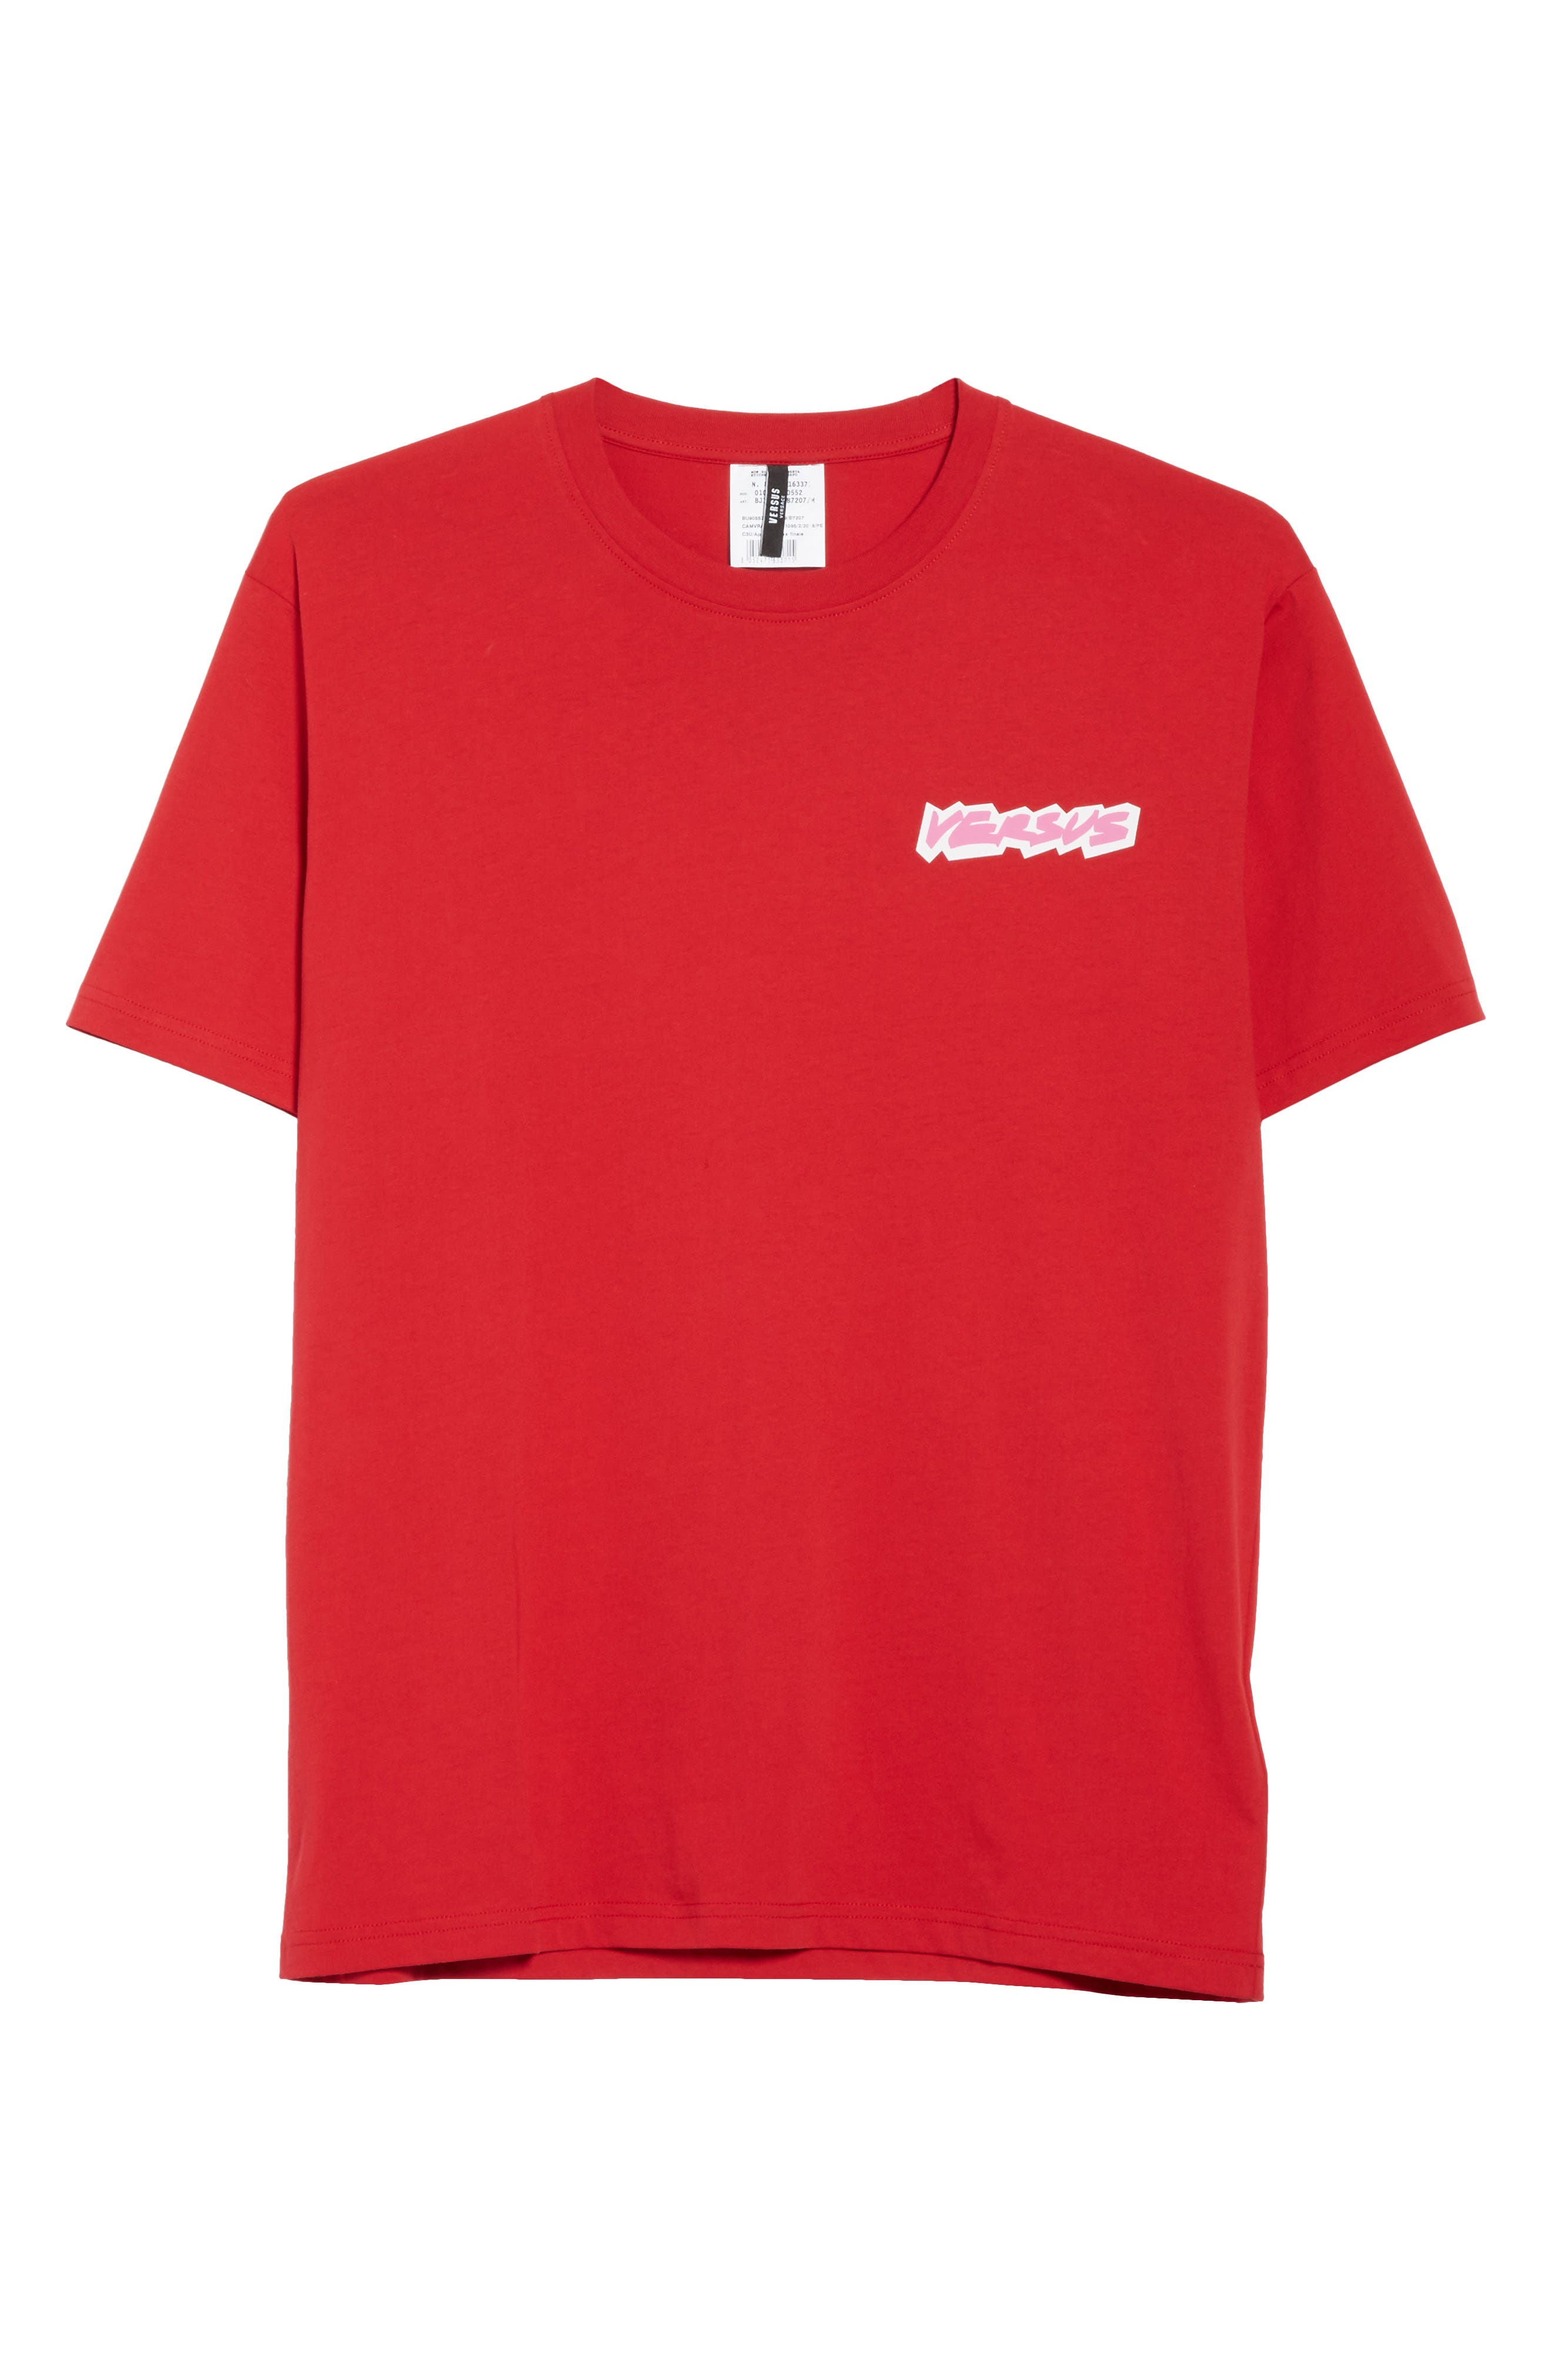 VERSUS by Versace Logo Graphic T-Shirt,                             Alternate thumbnail 6, color,                             Red